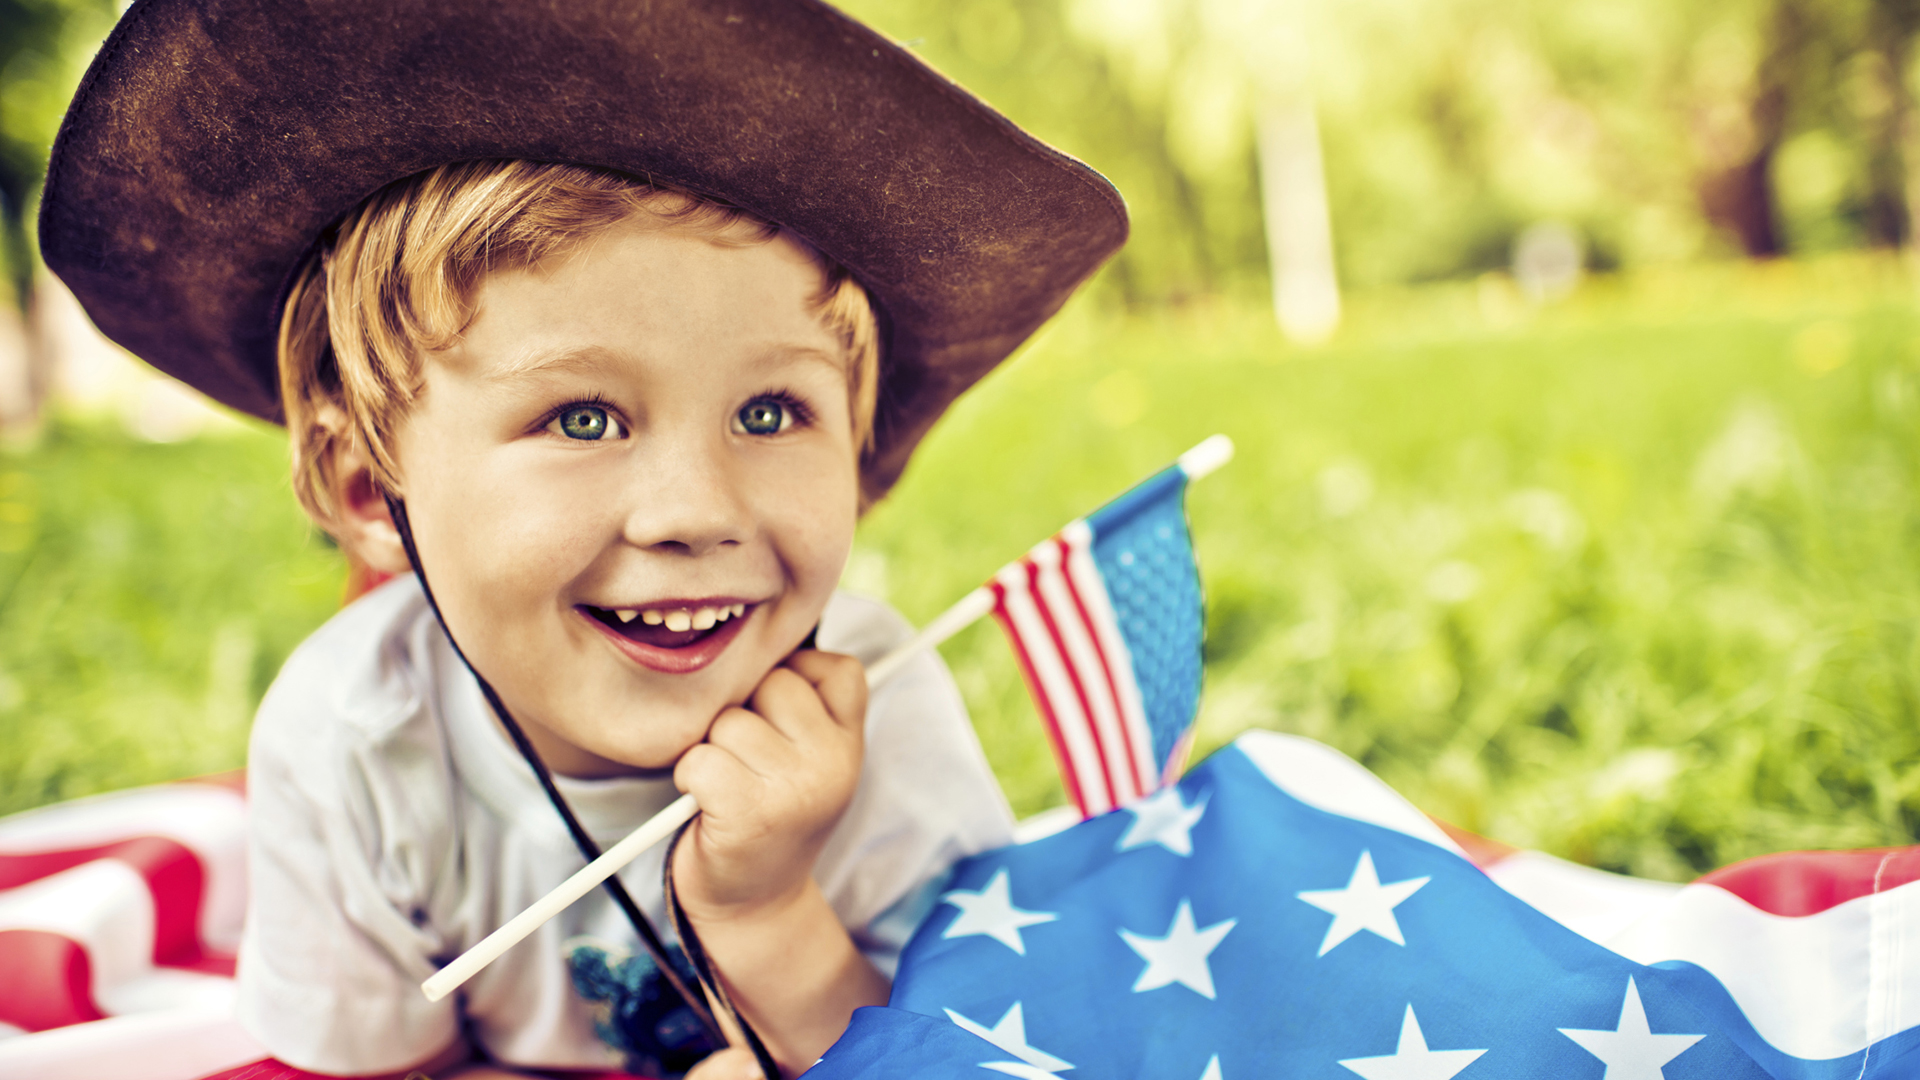 Little boy with American flag | Sheknows.com